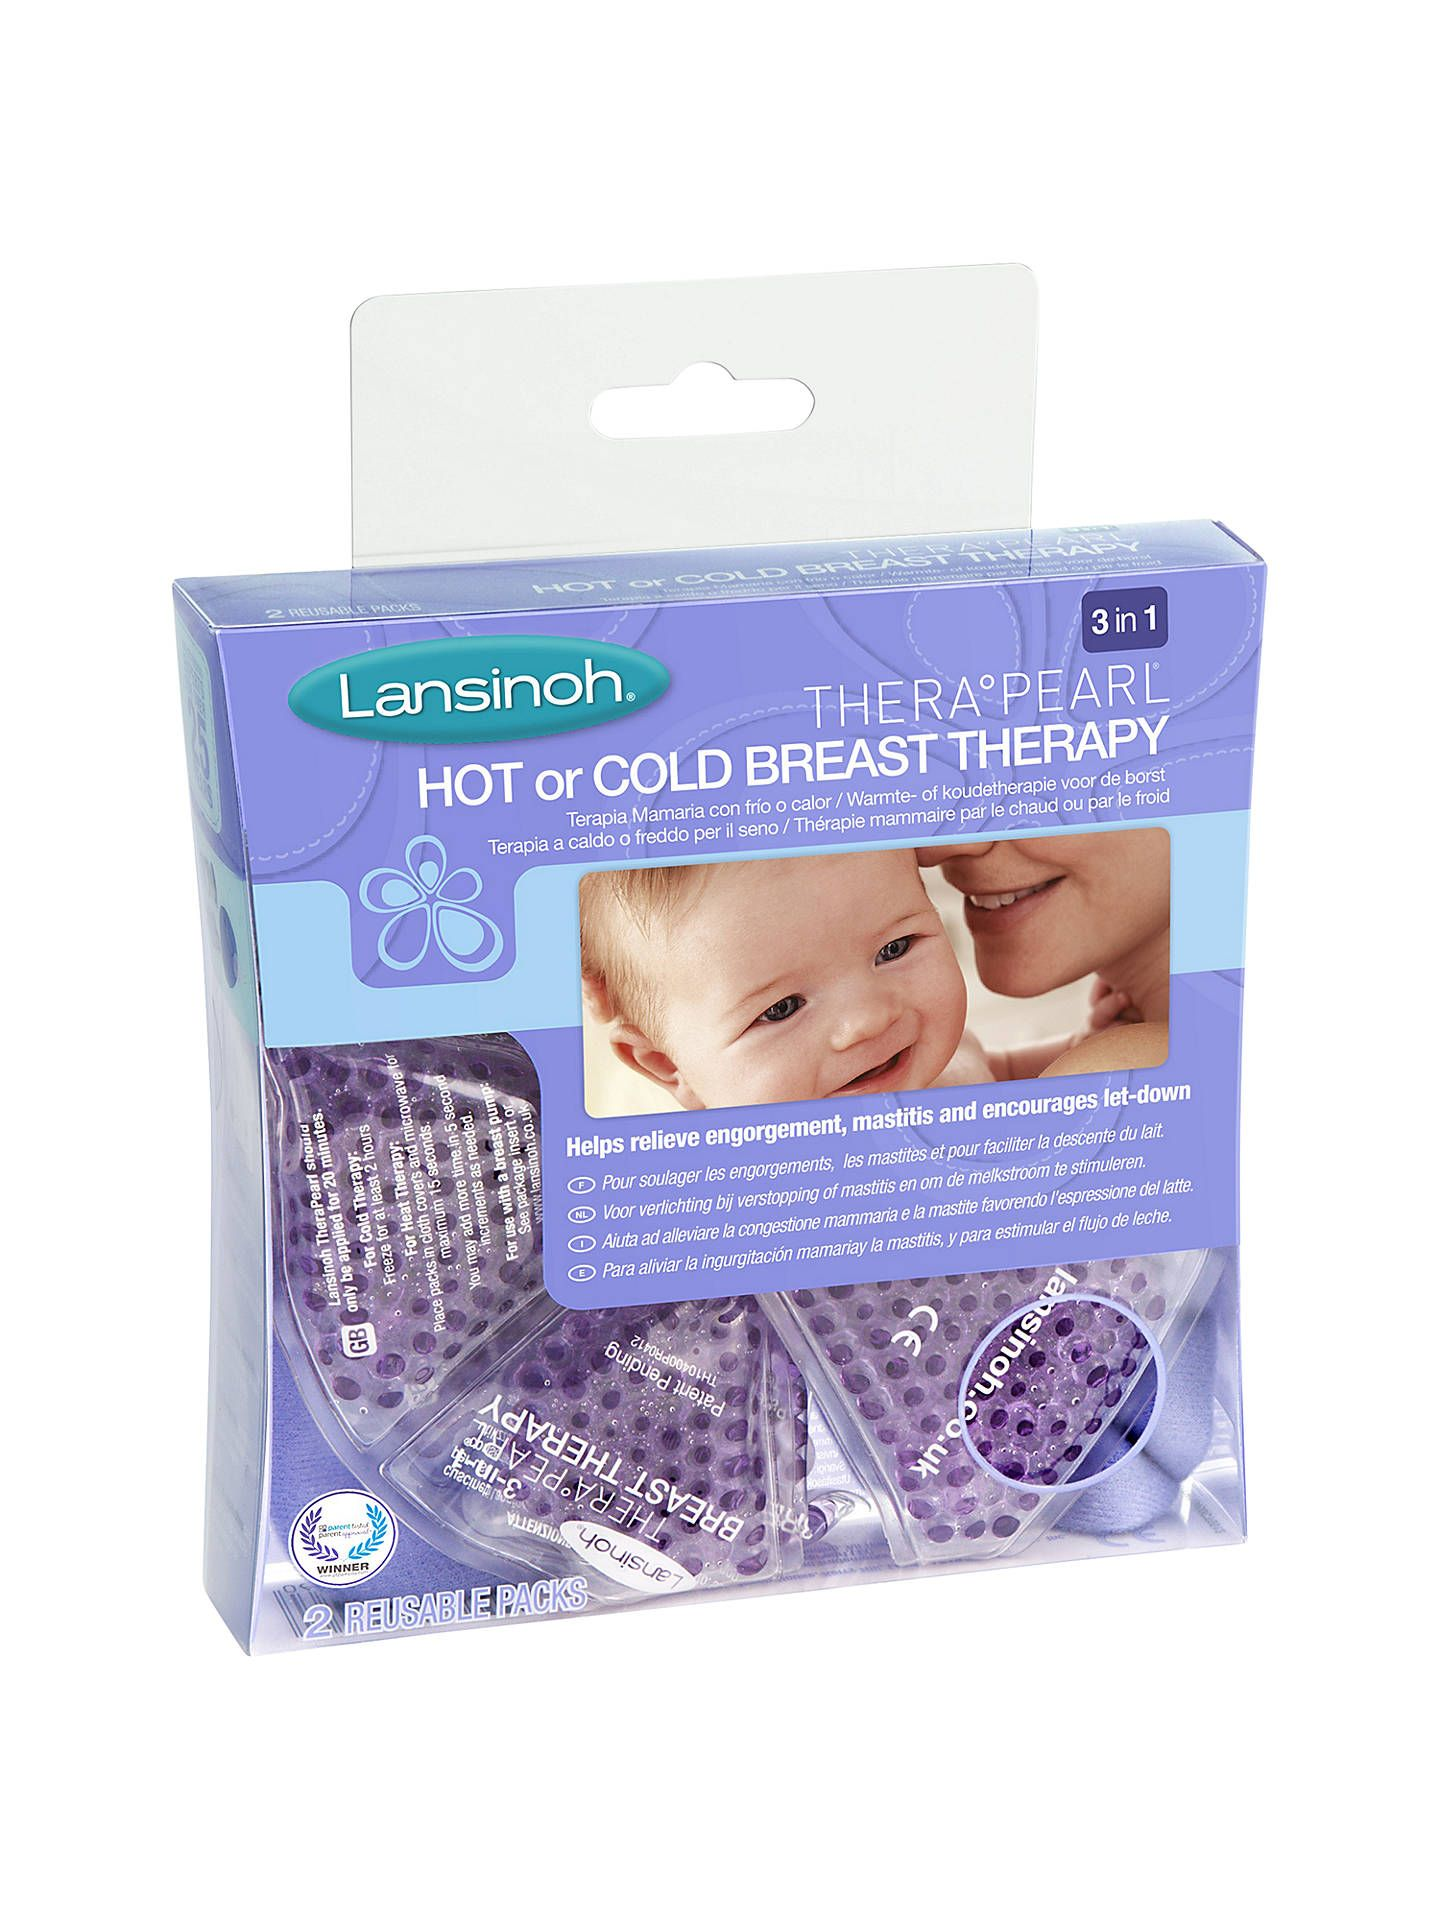 Borst Verlichting Lansinoh Therapearl 3 In 1 Breast Therapy Pack Little One